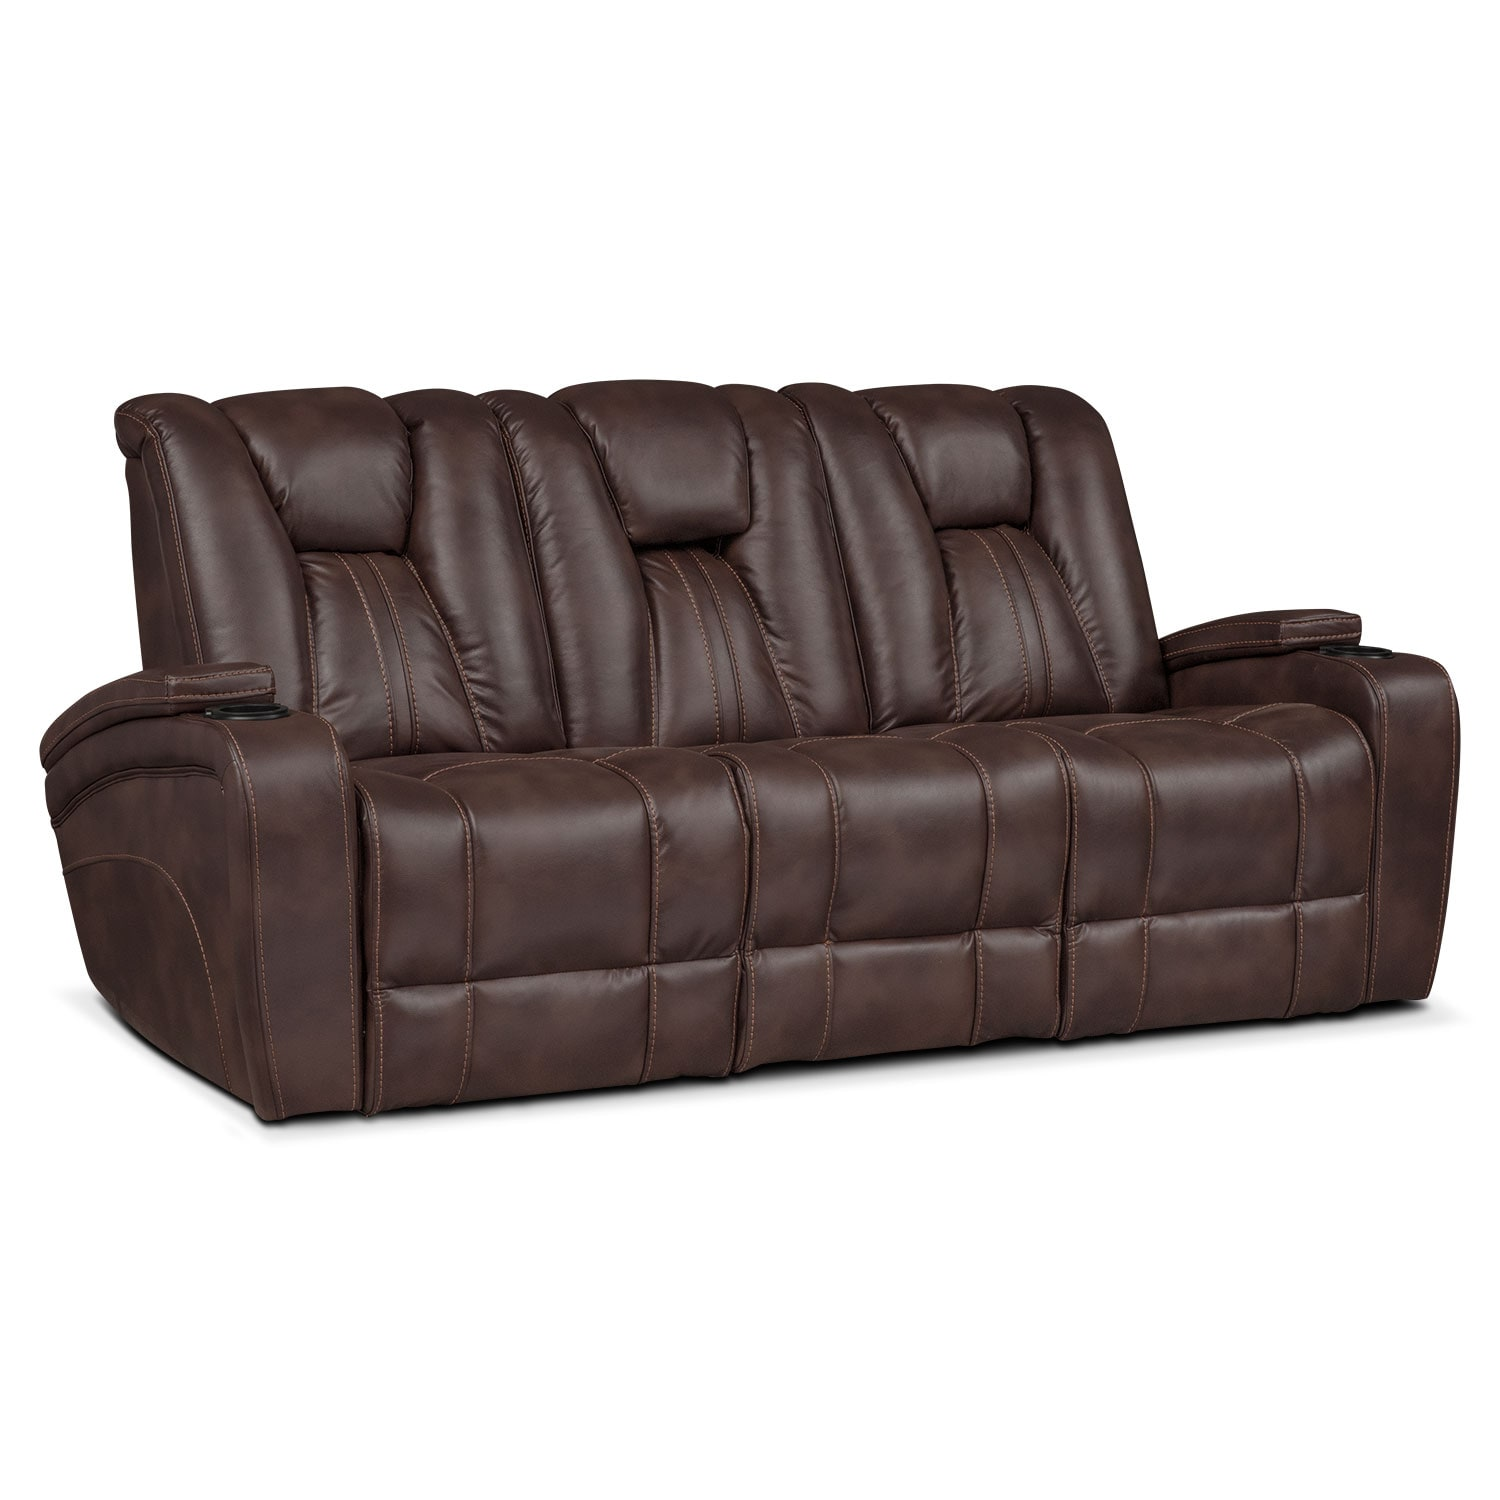 Beau ... Dual Power Reclining Sofa   Brown. Hover To Zoom